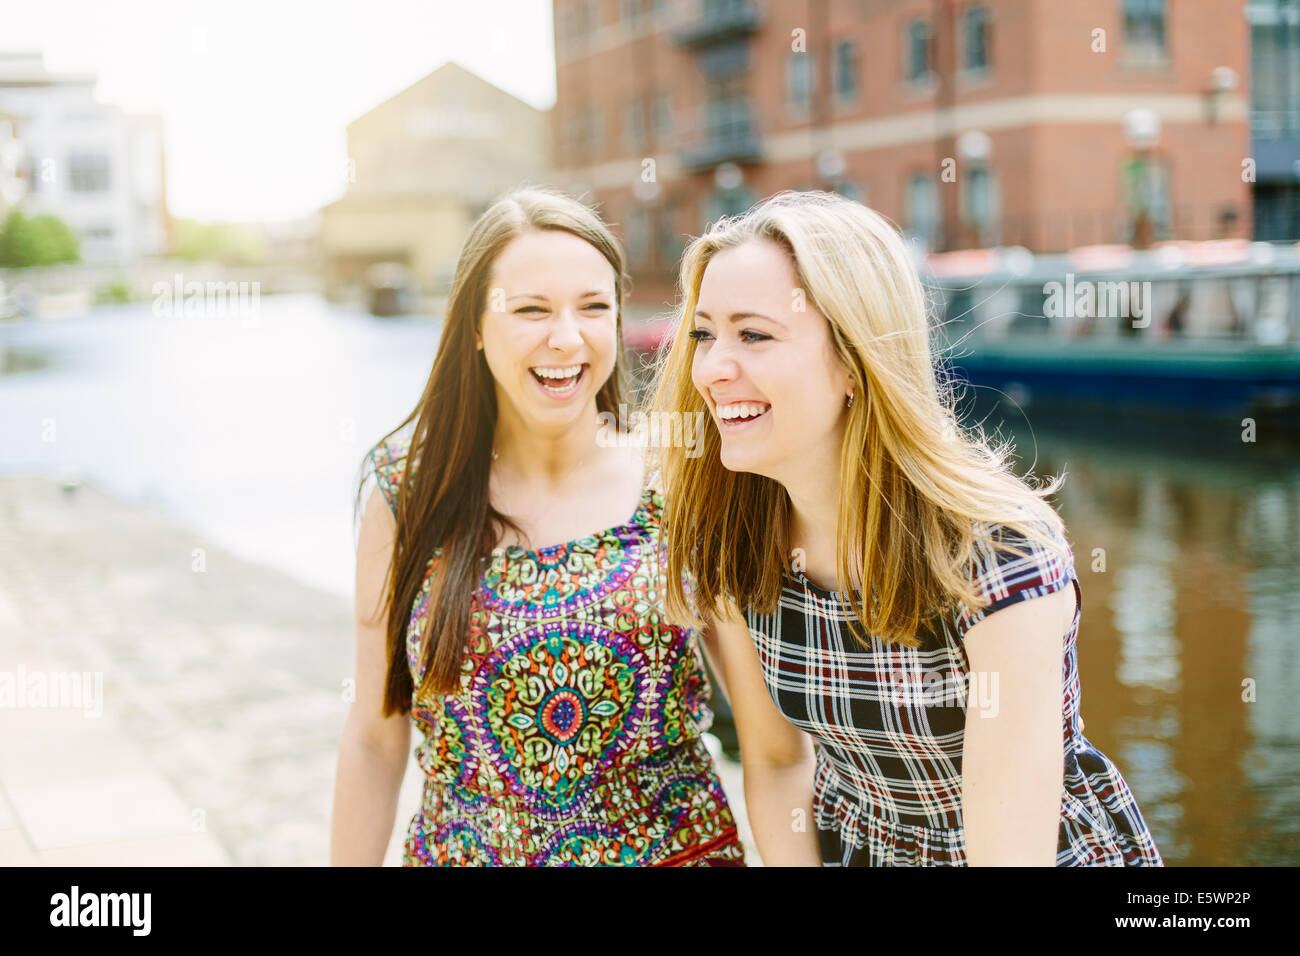 Female friends laughing - Stock Image